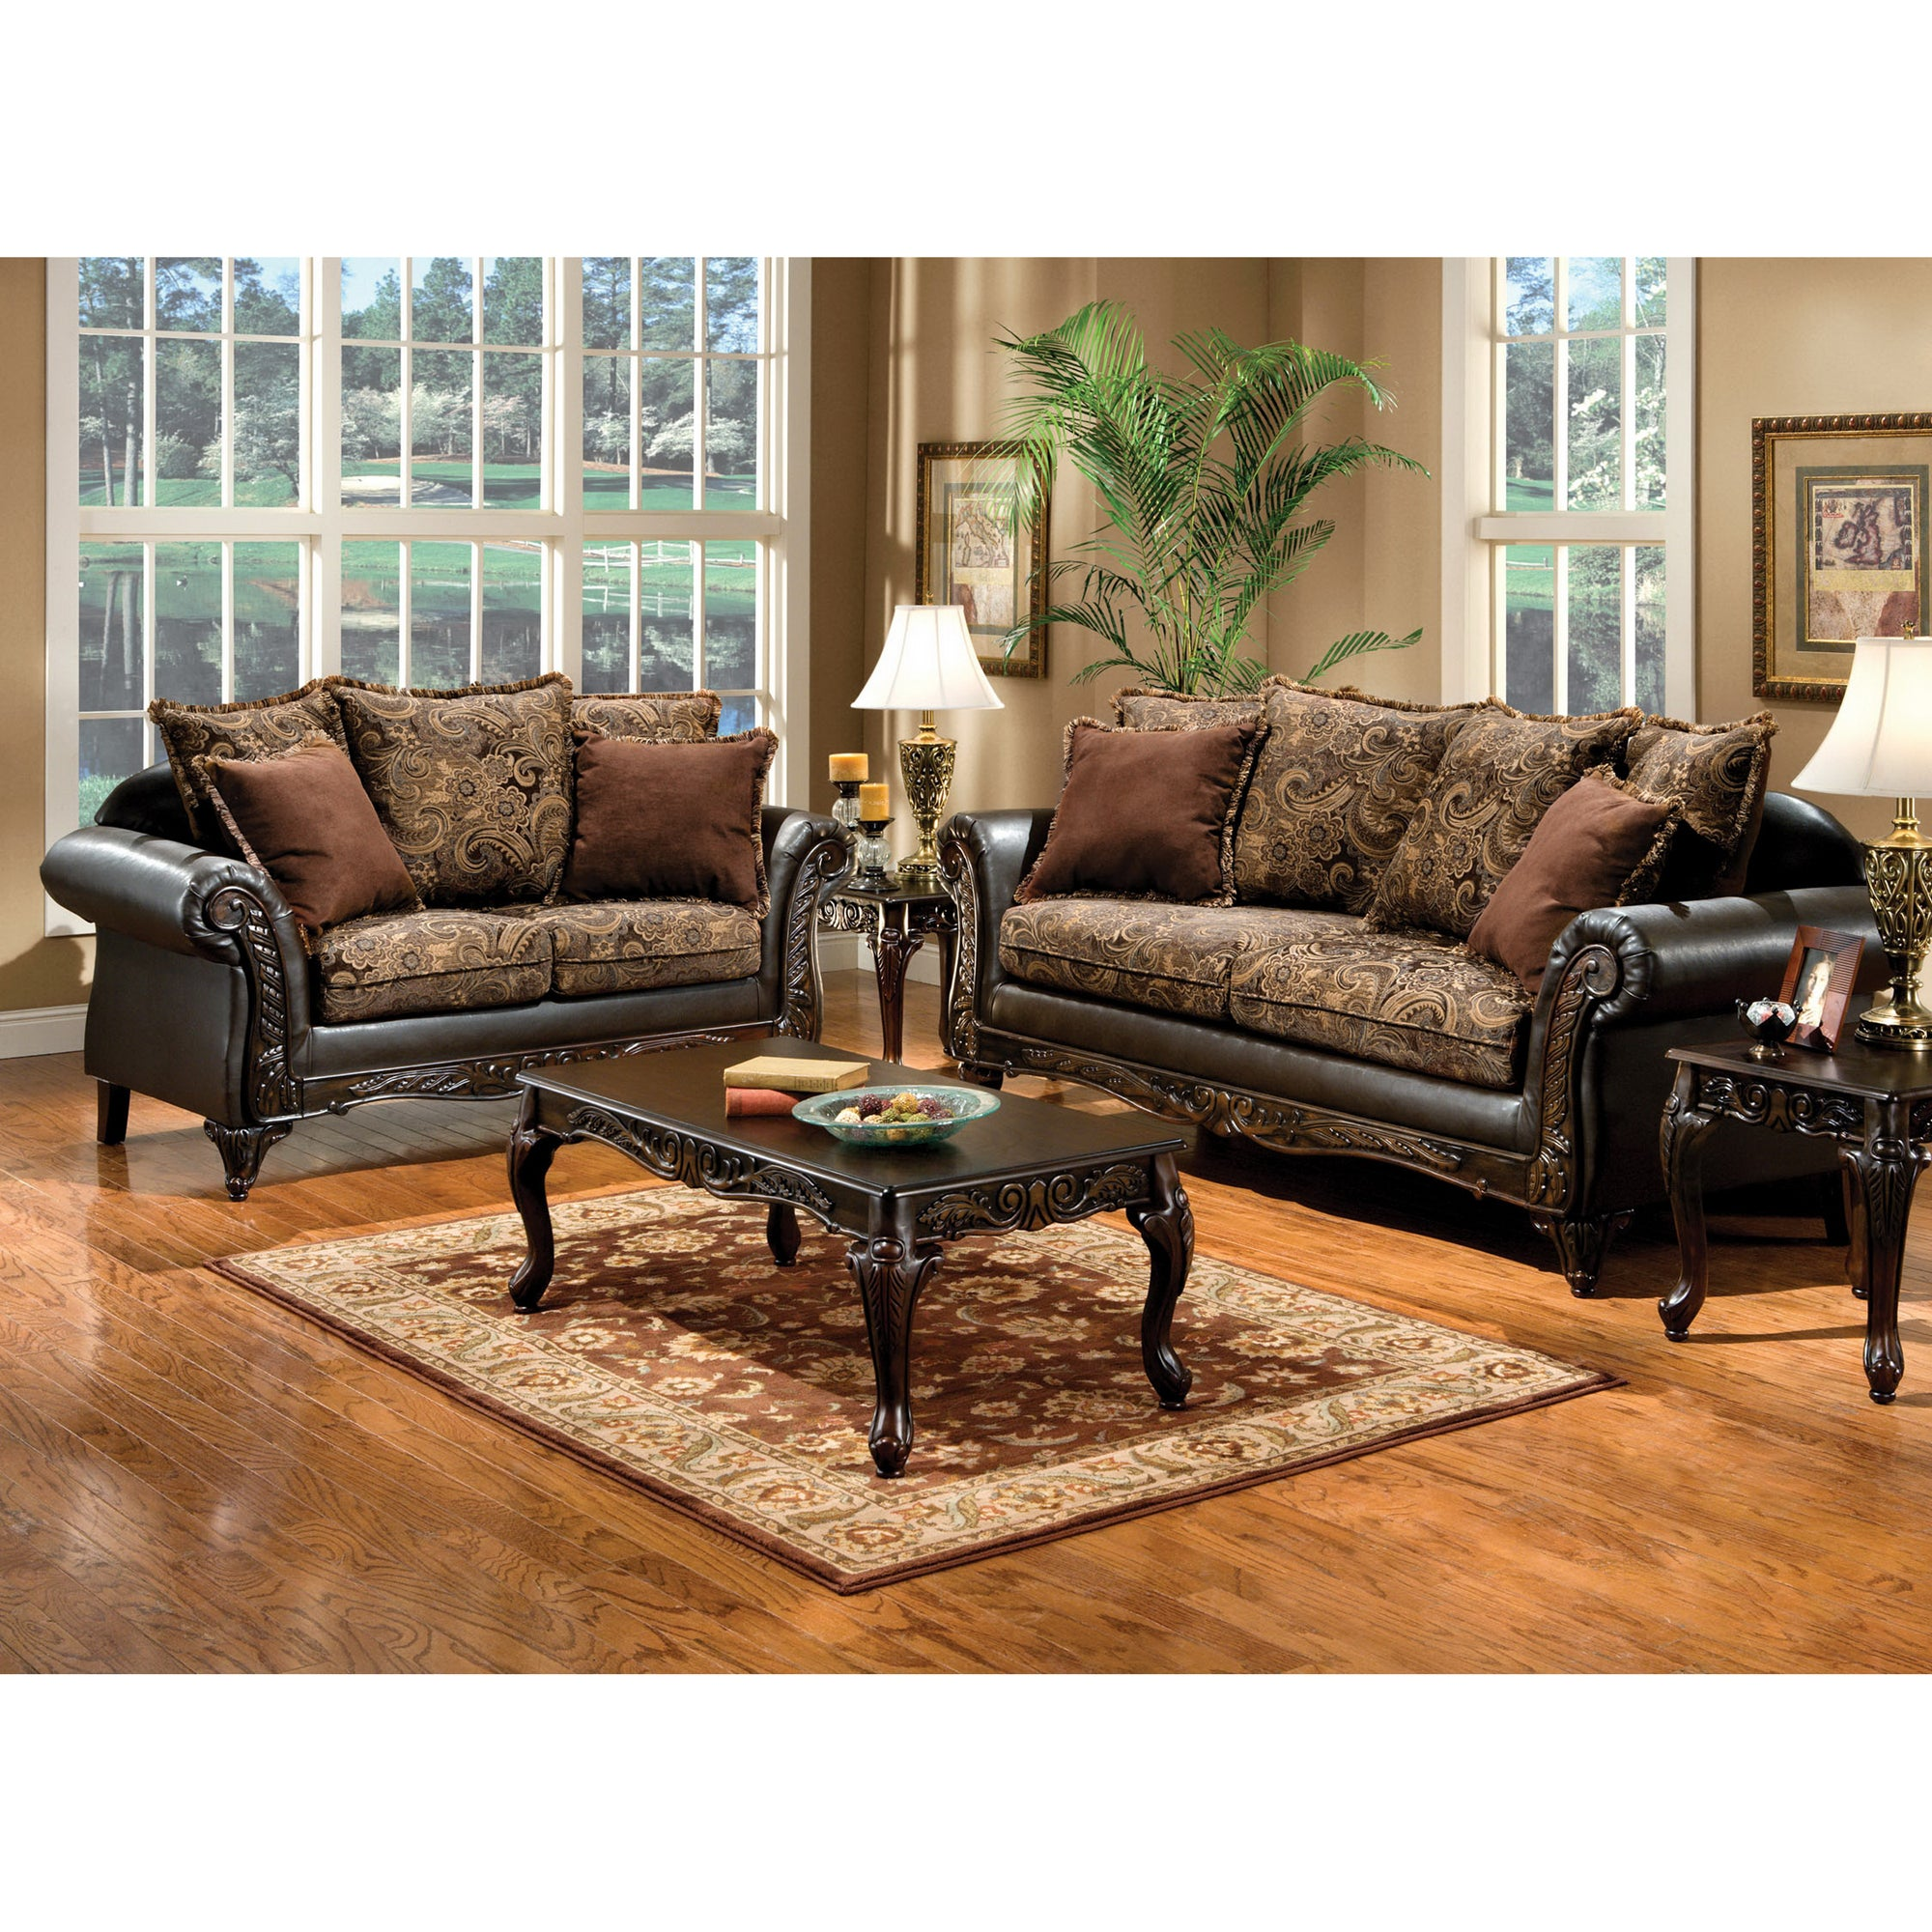 Furniture of america ruthy traditional dark brown floral Floral living room furniture sets